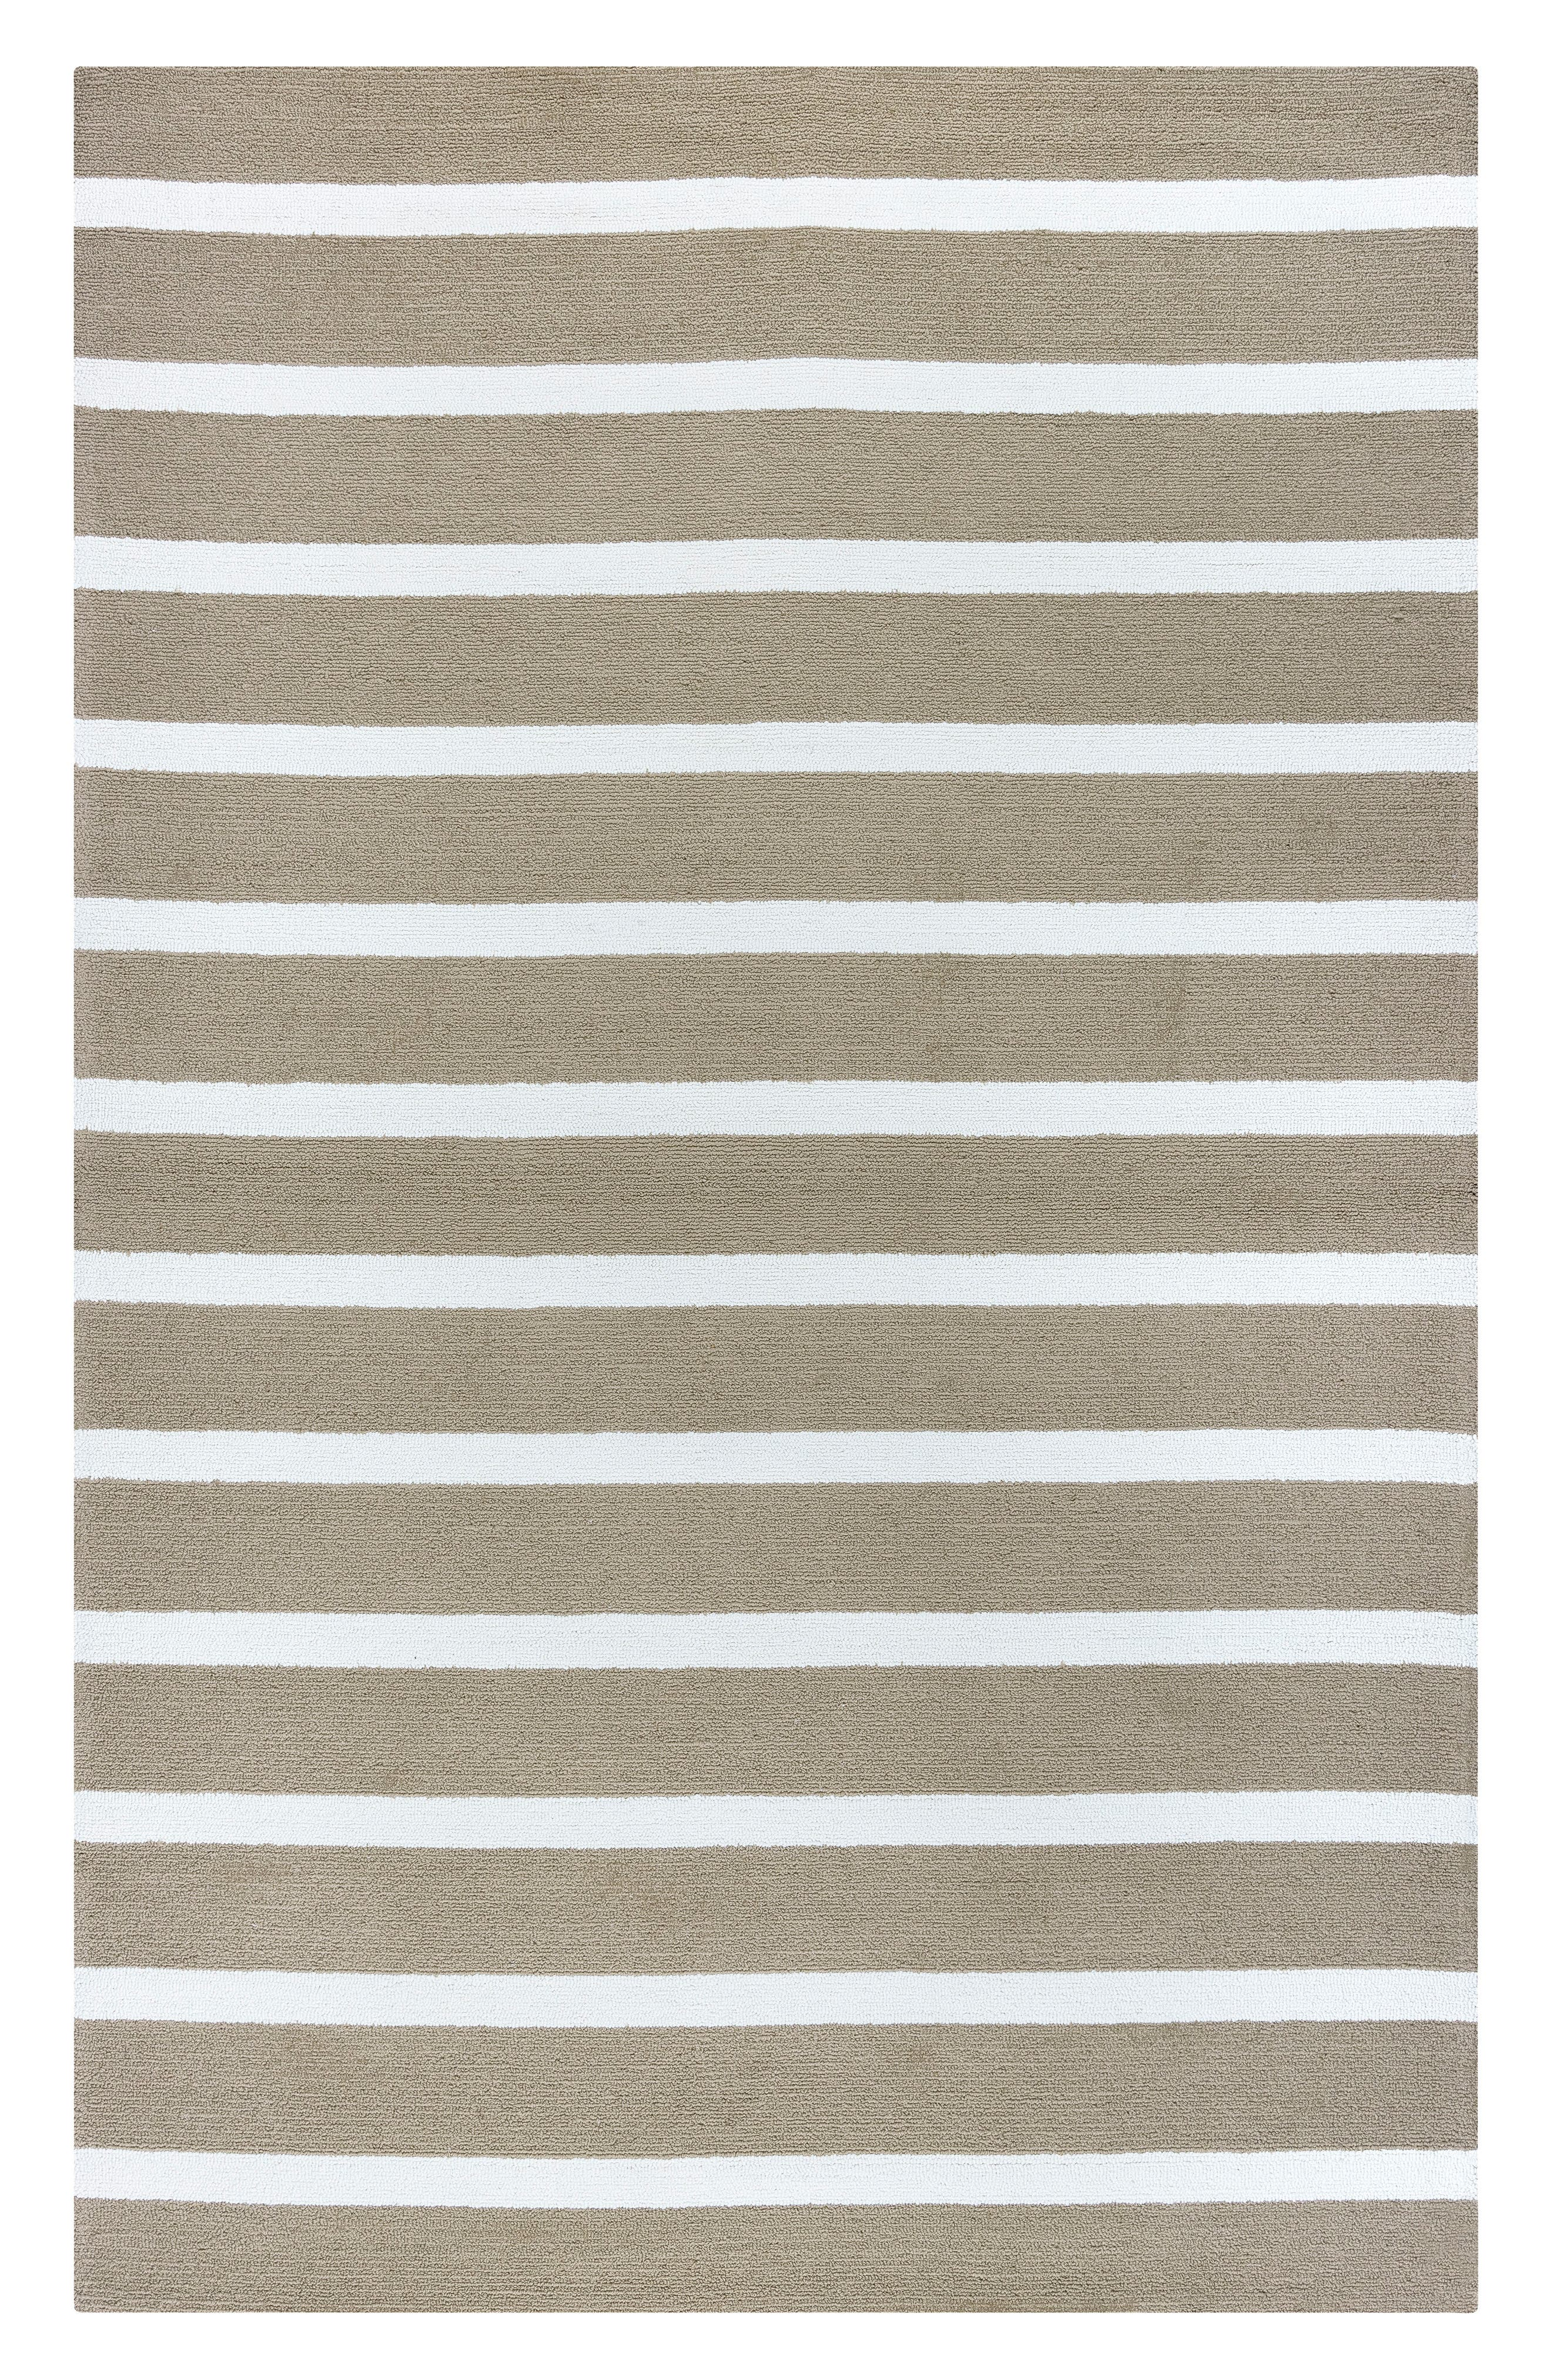 Alternate Image 1 Selected - Rizzy Home Azzura Hill Ami Rug